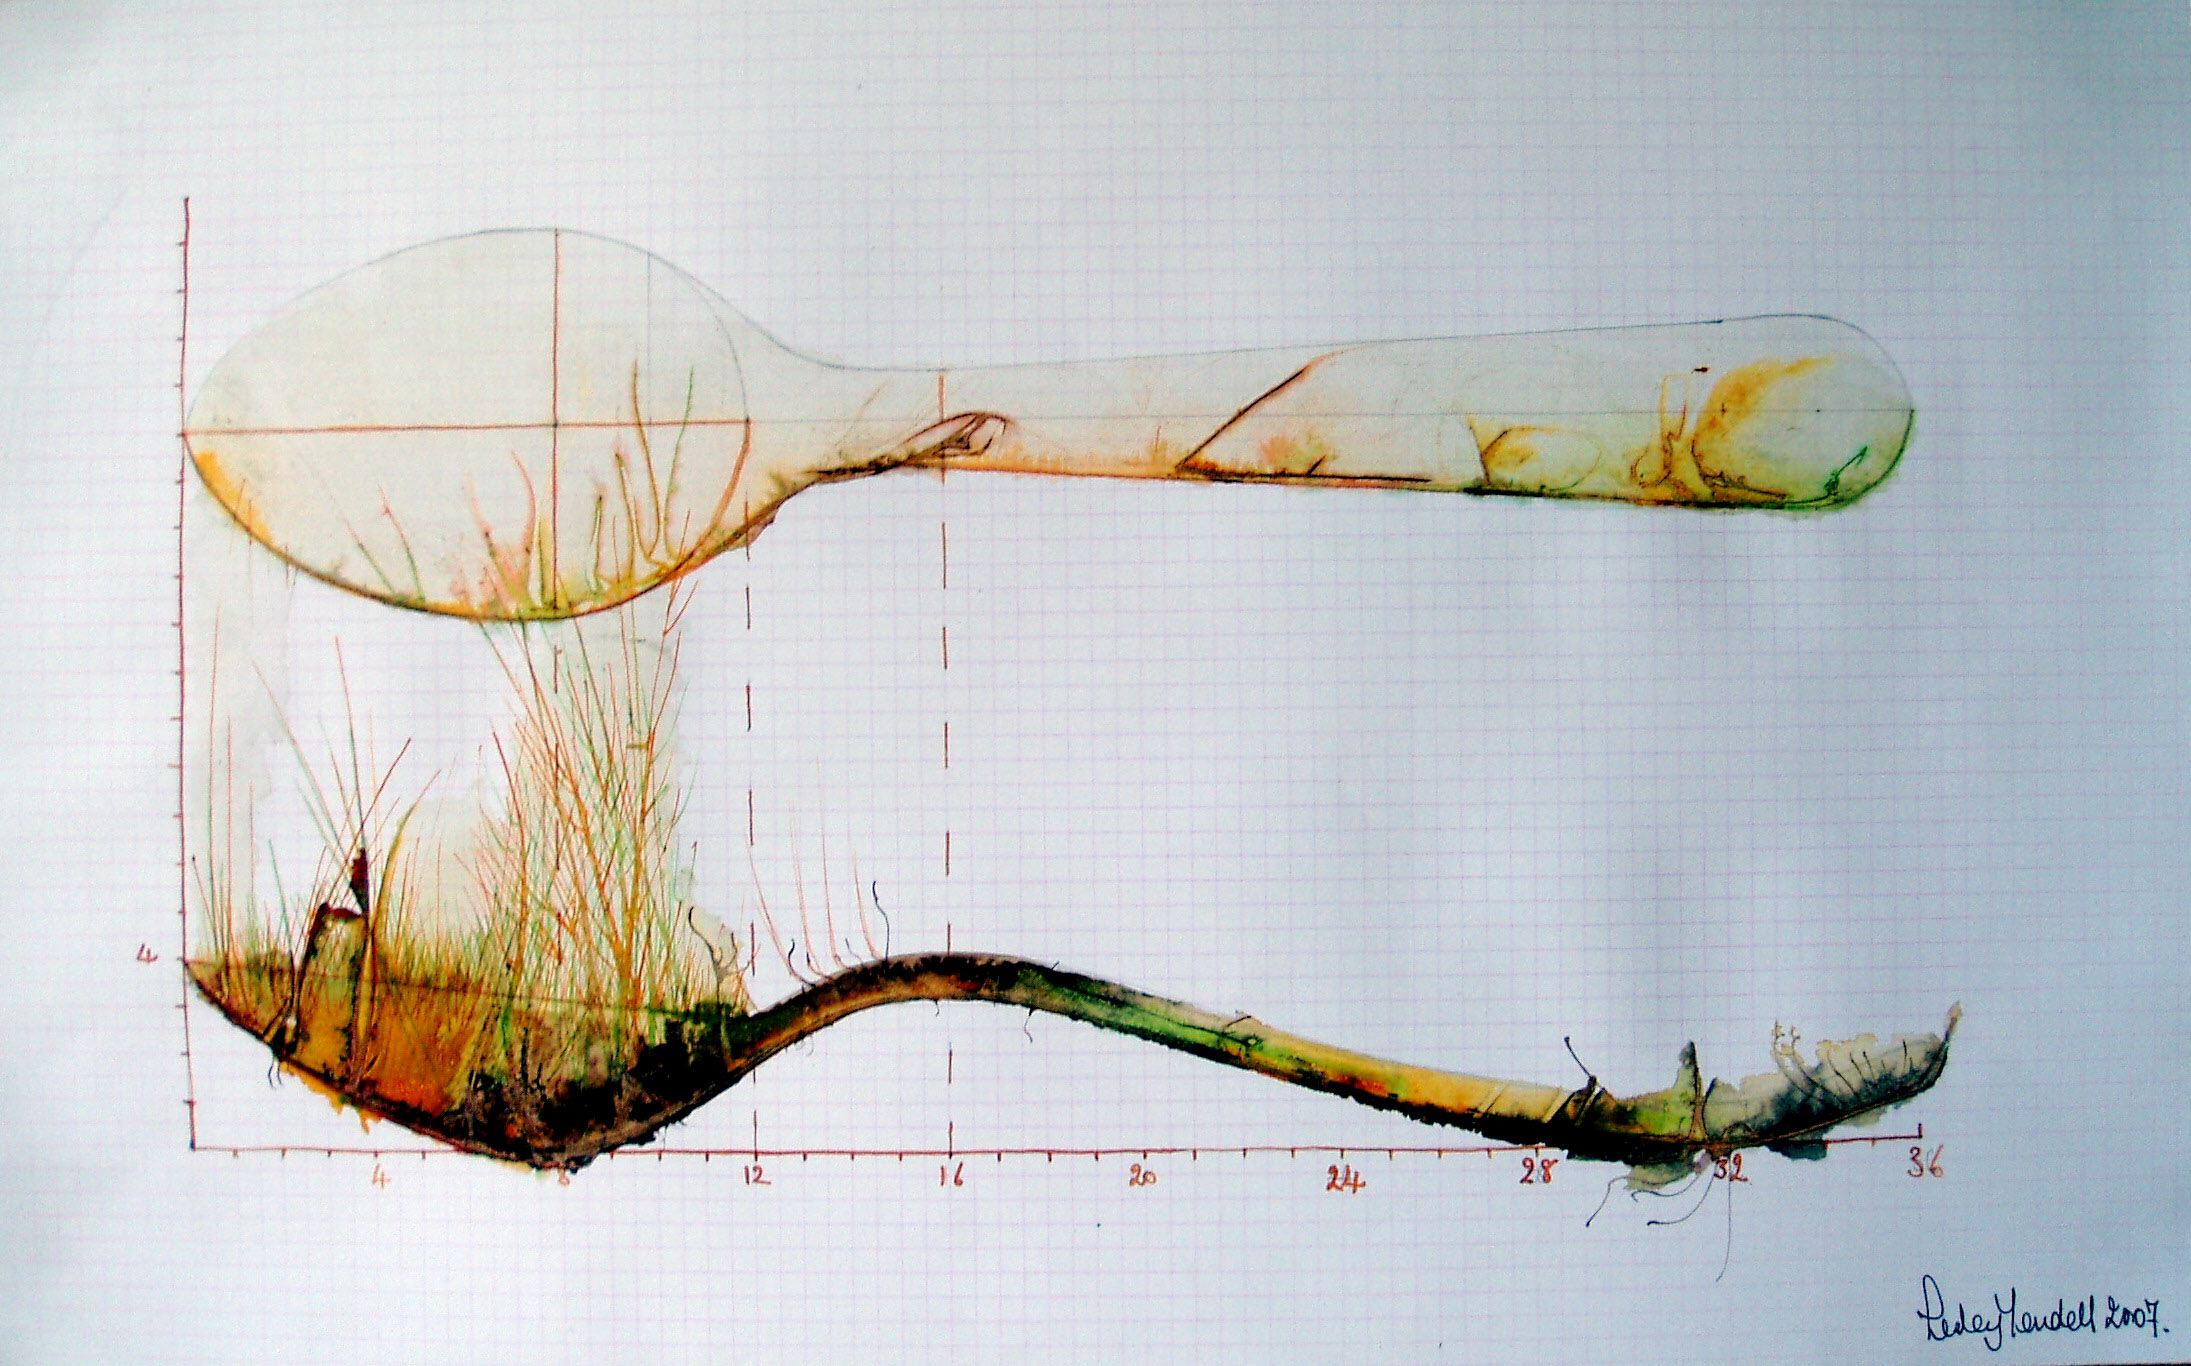 2191x1366 T42' Spoon Project Drawing Lesley Yendell